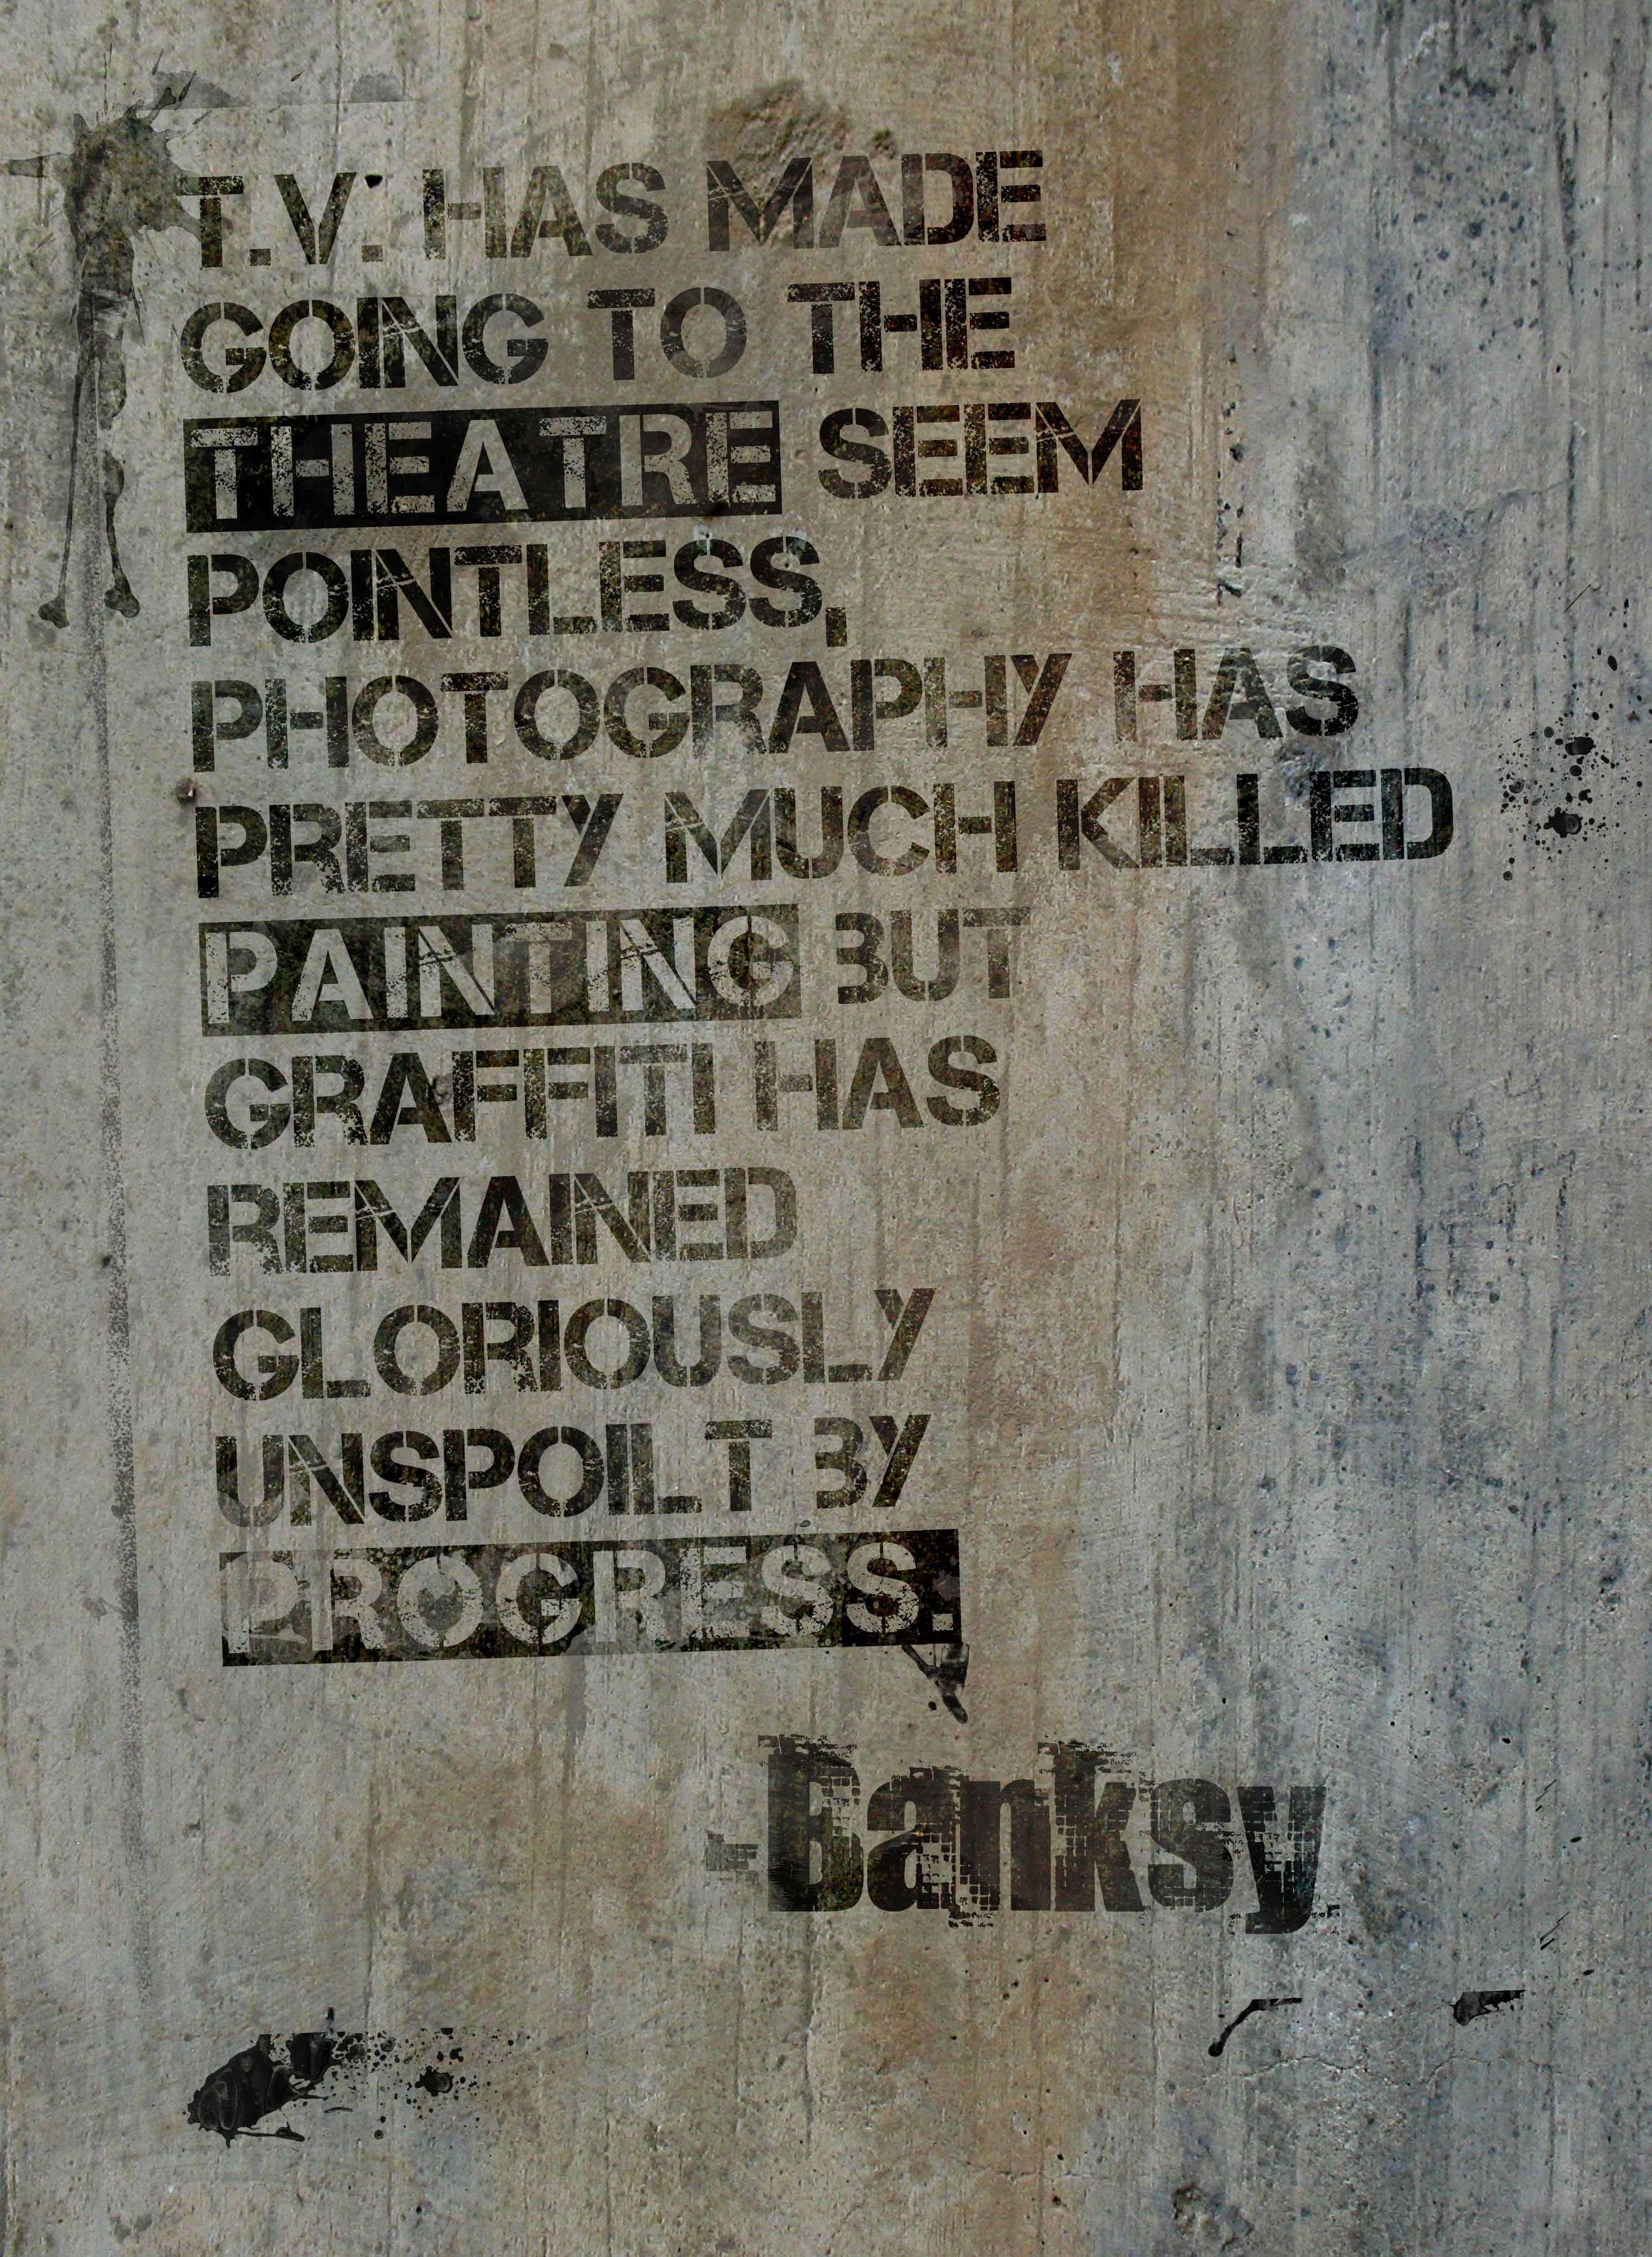 banksys artwork in detroit essay Banksy is an anonymous england-based street artist, vandal, political activist,  and film director his satirical street art and subversive epigrams combine dark.